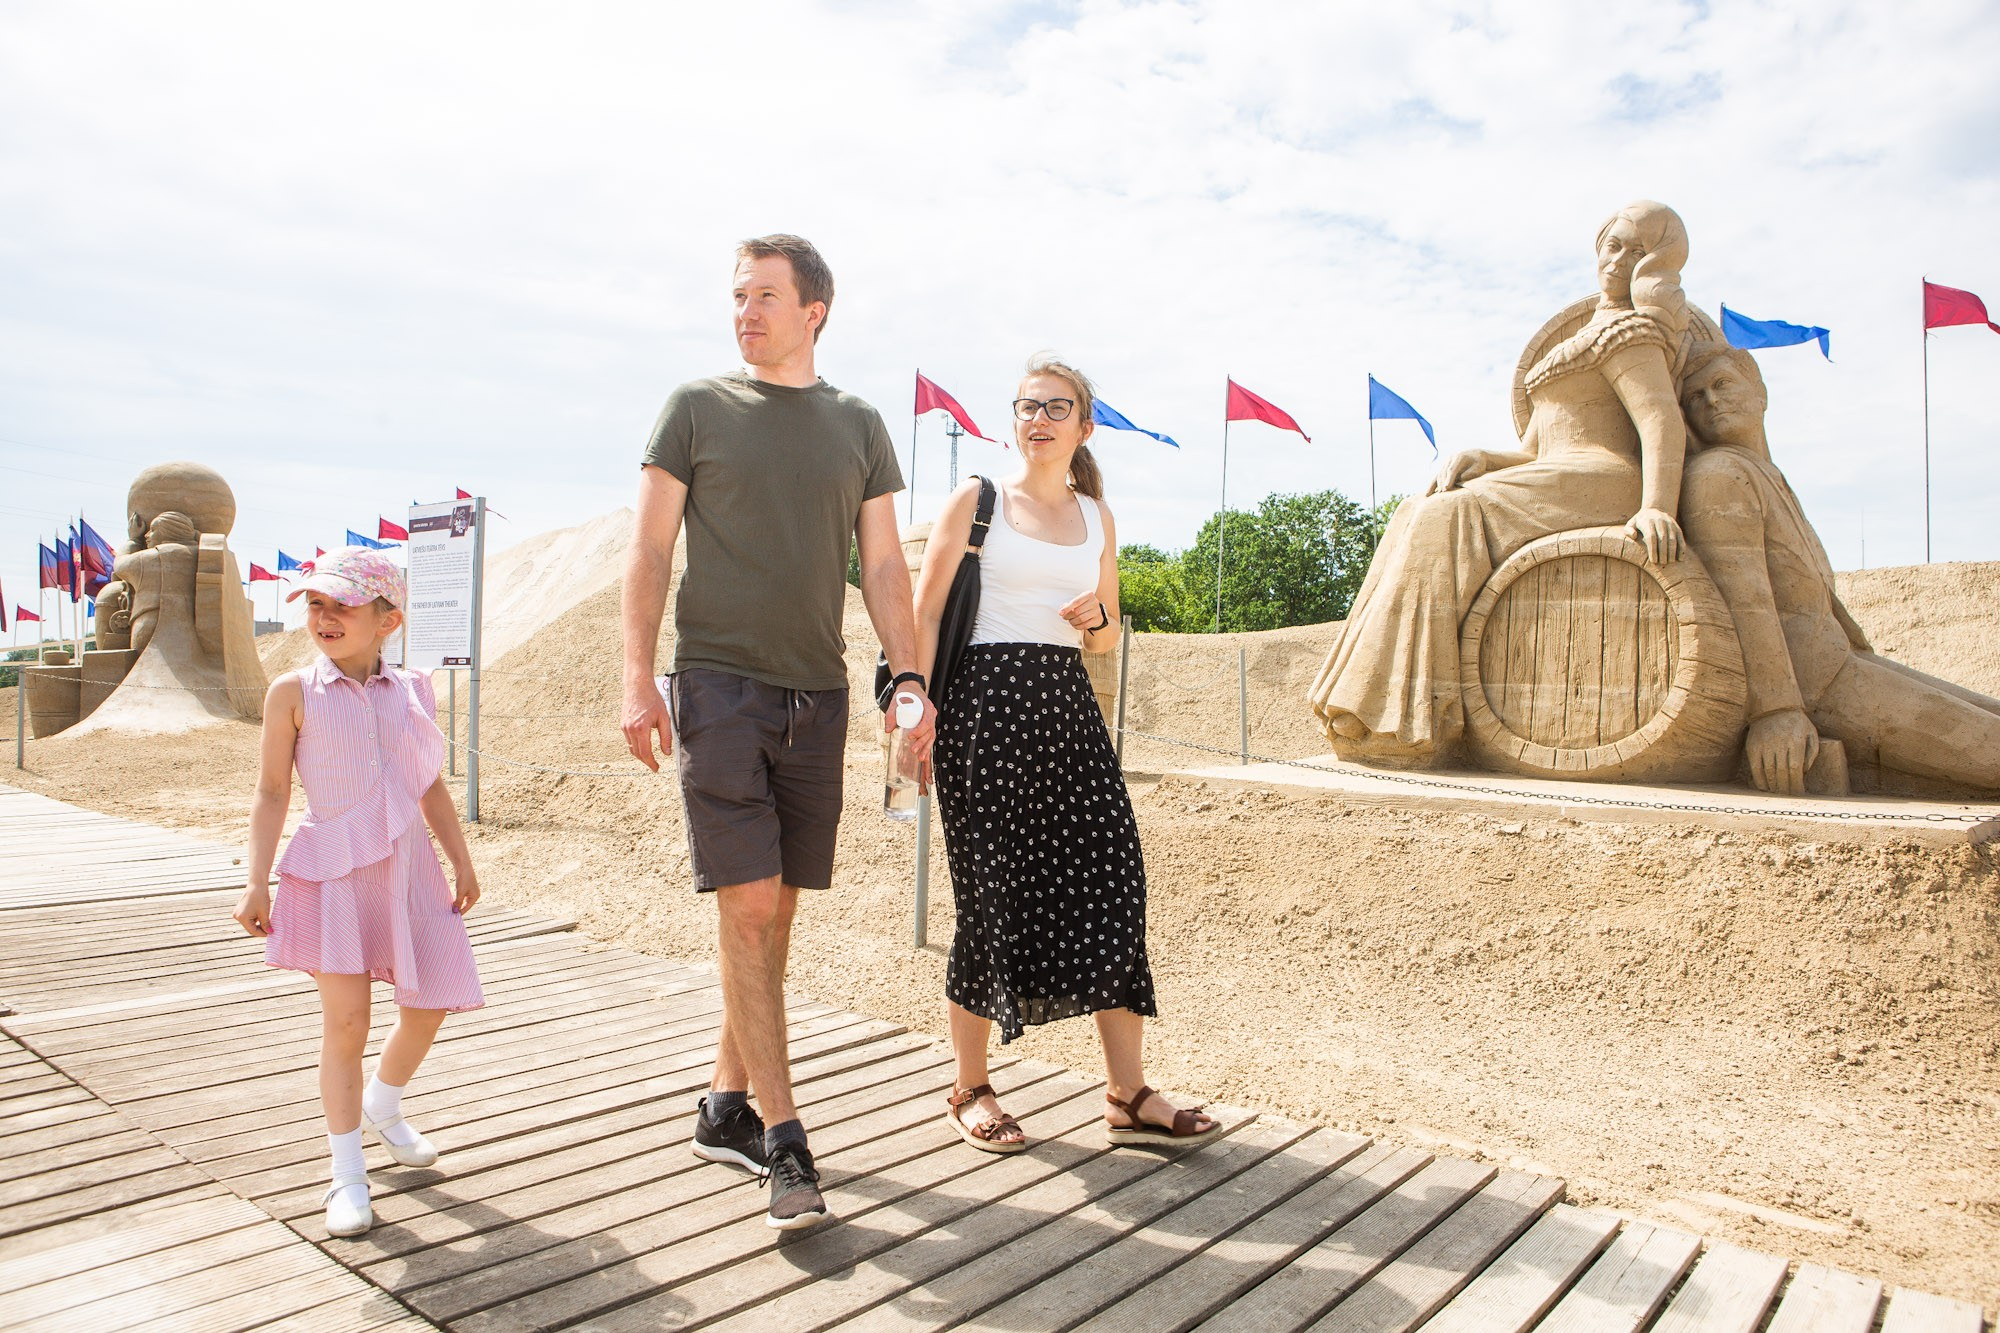 Sand sculpture park is open to visitors